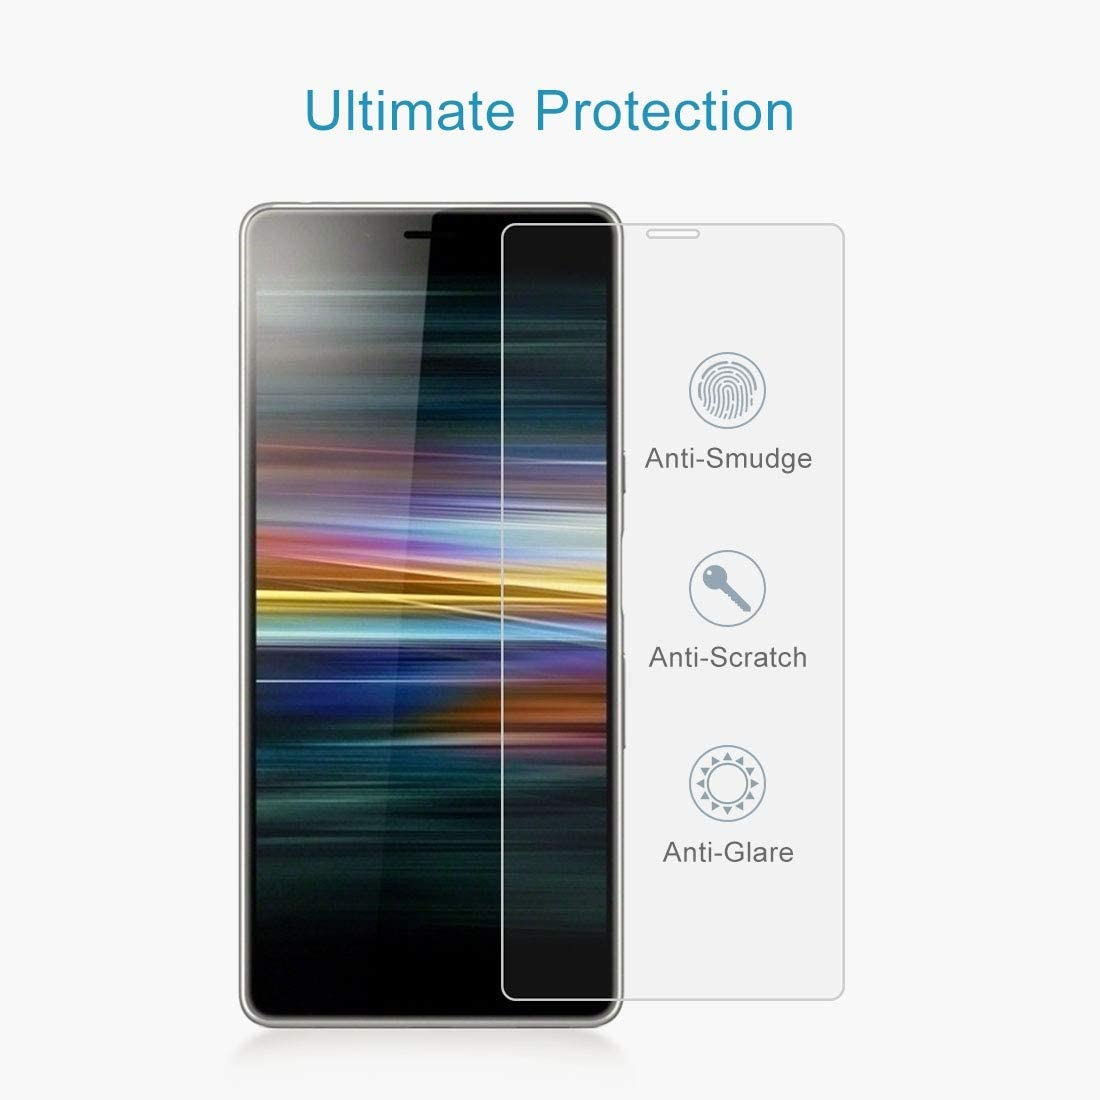 Wangl Mobile Phone Tempered Glass Film 100 PCS 0.26mm 9H 2.5D Tempered Glass Film for Sony Xperia L3 Tempered Glass Film